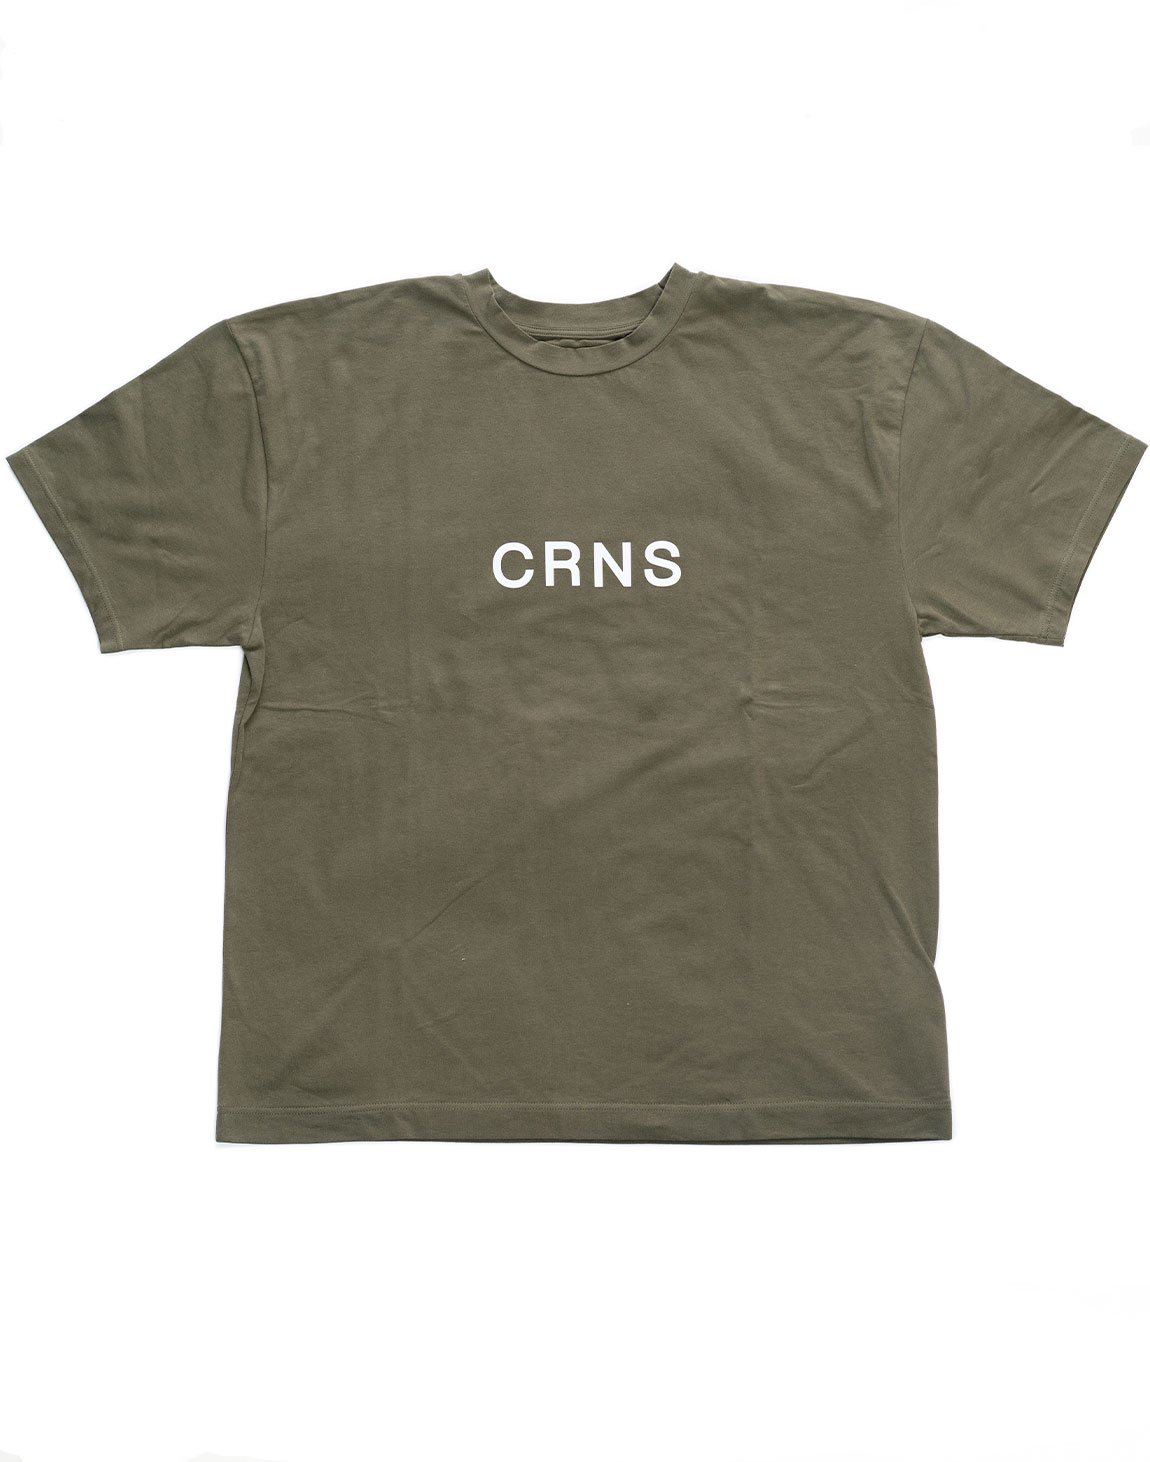 <img class='new_mark_img1' src='https://img.shop-pro.jp/img/new/icons1.gif' style='border:none;display:inline;margin:0px;padding:0px;width:auto;' />CRNS Over Size T-Shirt  KHAKI